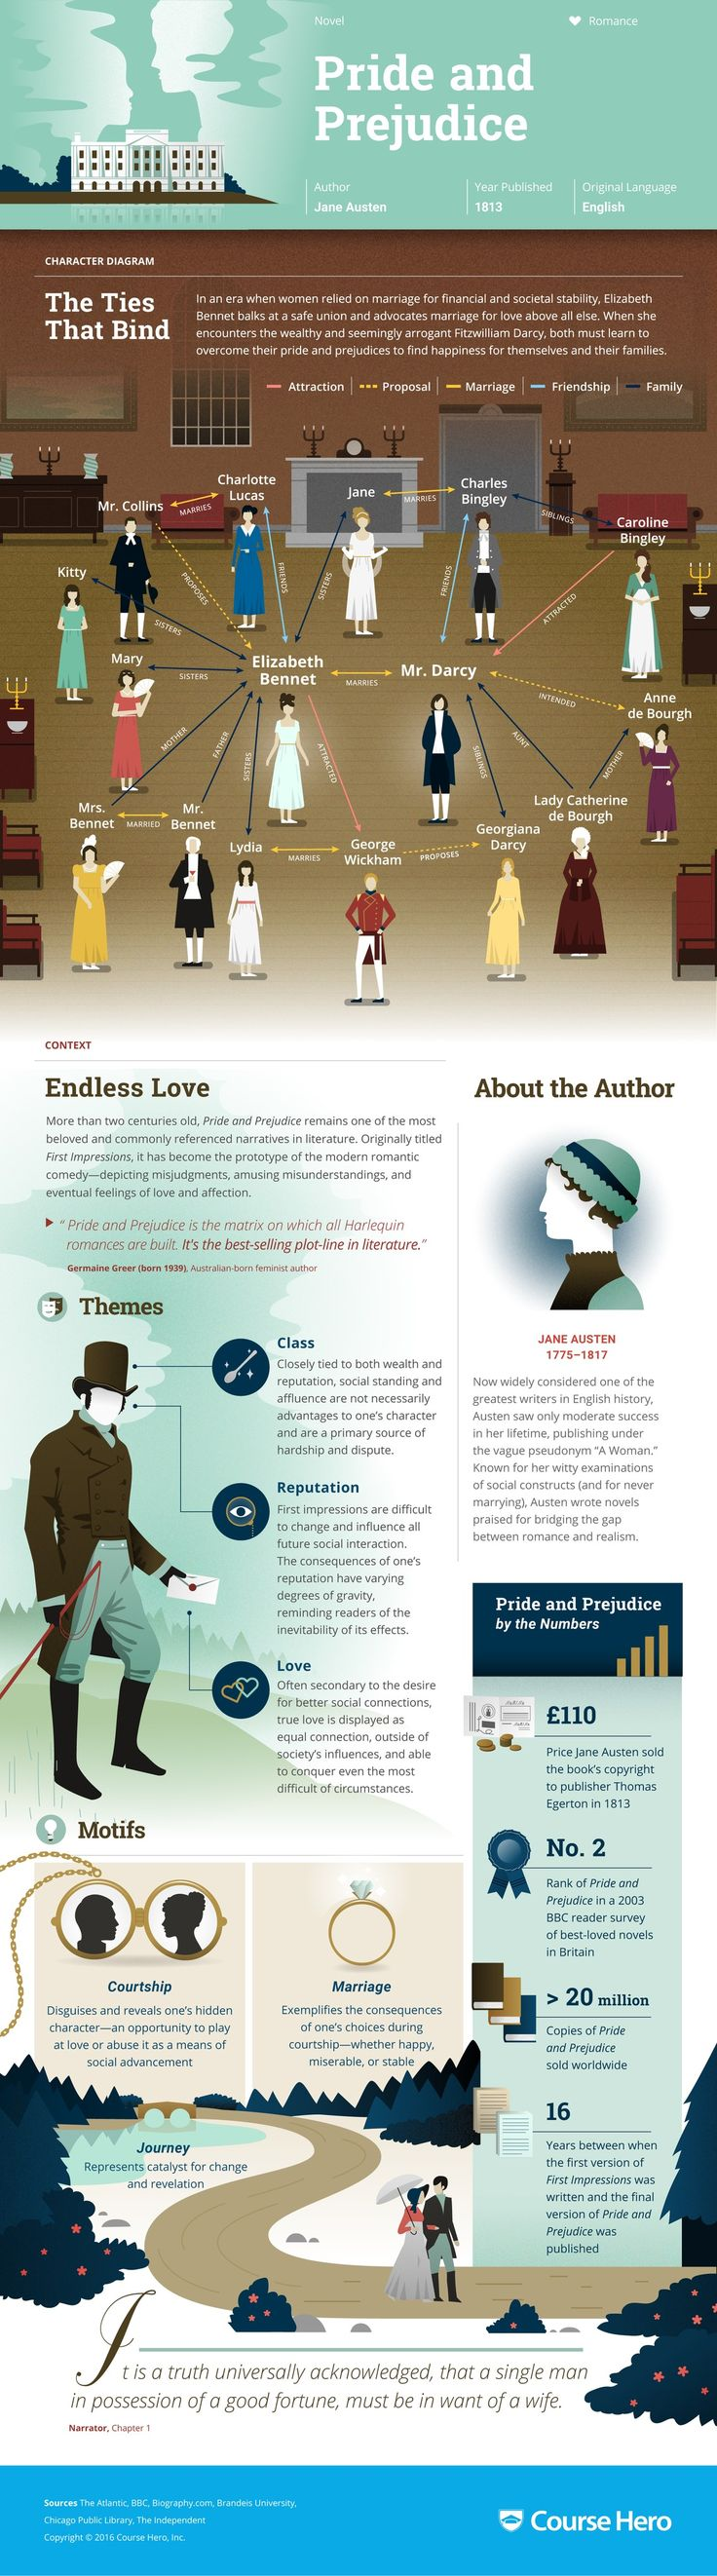 ideas about pride and prejudice characters study guide for jane austen s pride and prejudice including chapter summary character analysis and more learn all about pride and prejudice